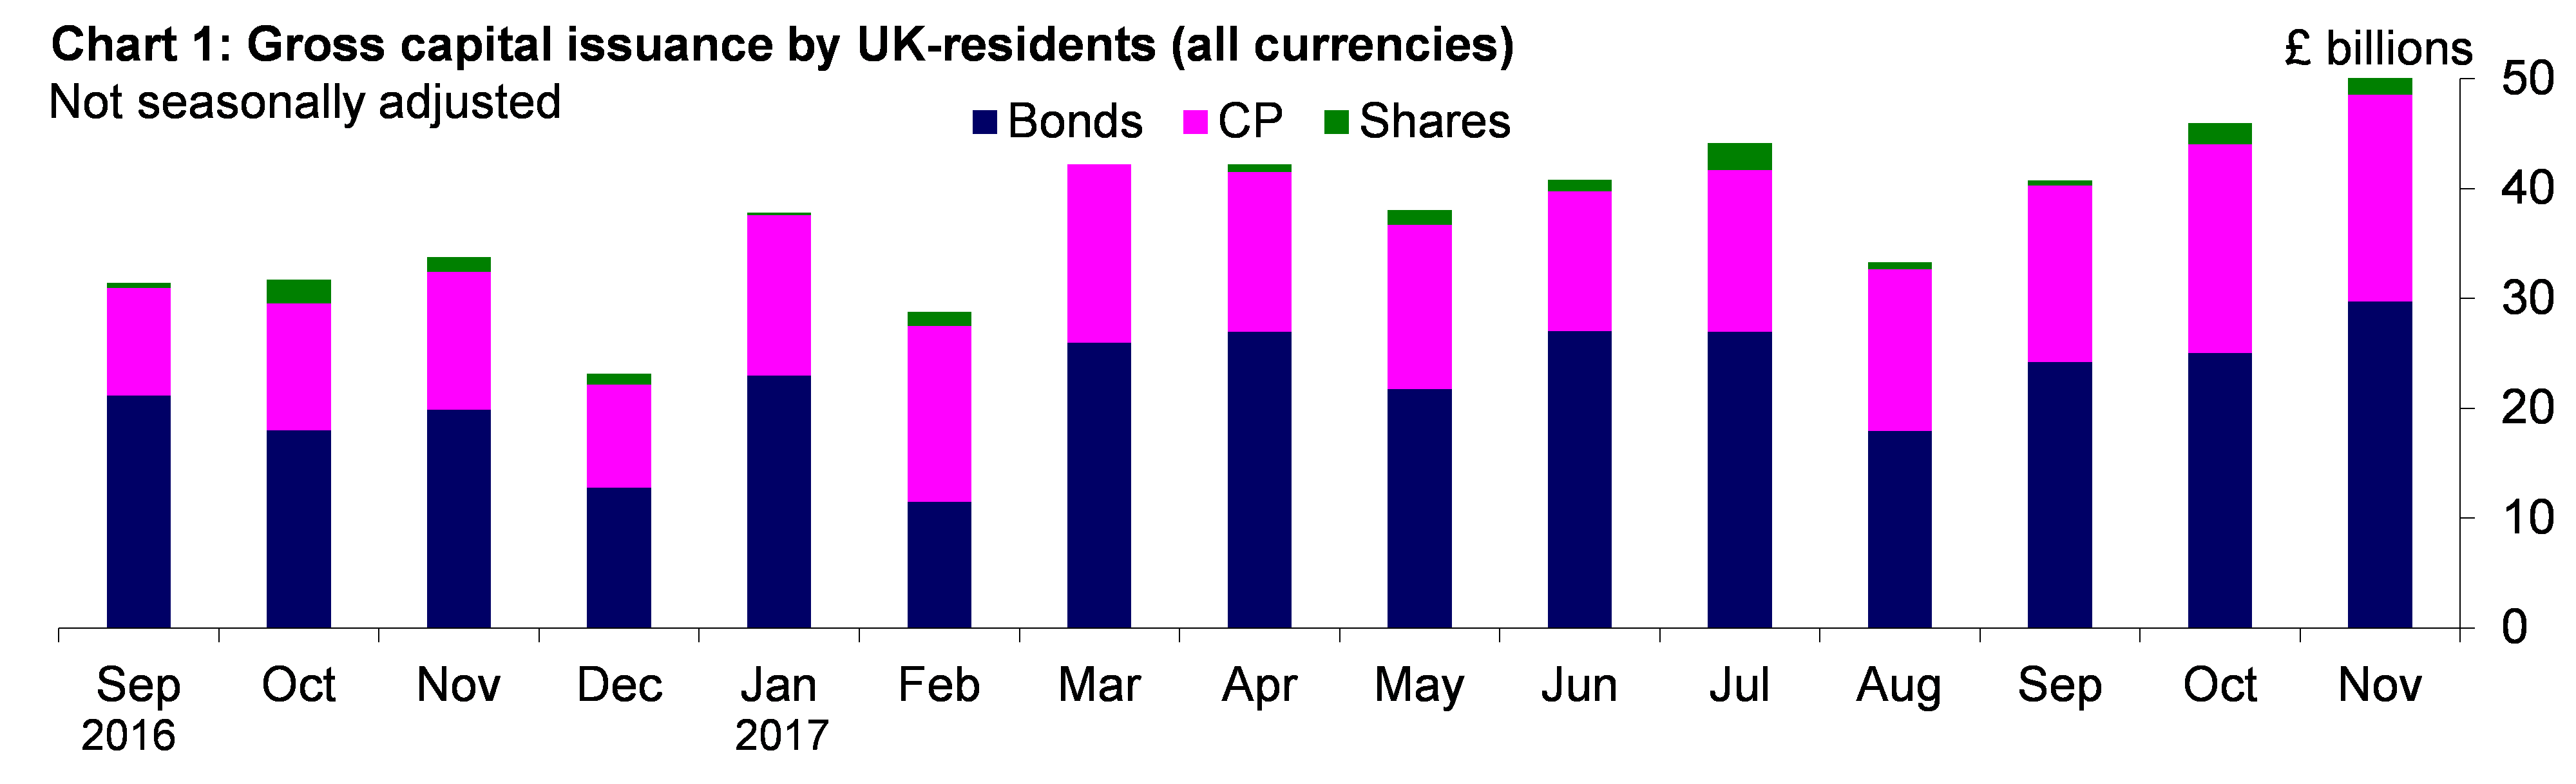 Chart 1: Gross capital issuance by UK-residents (all currencies)